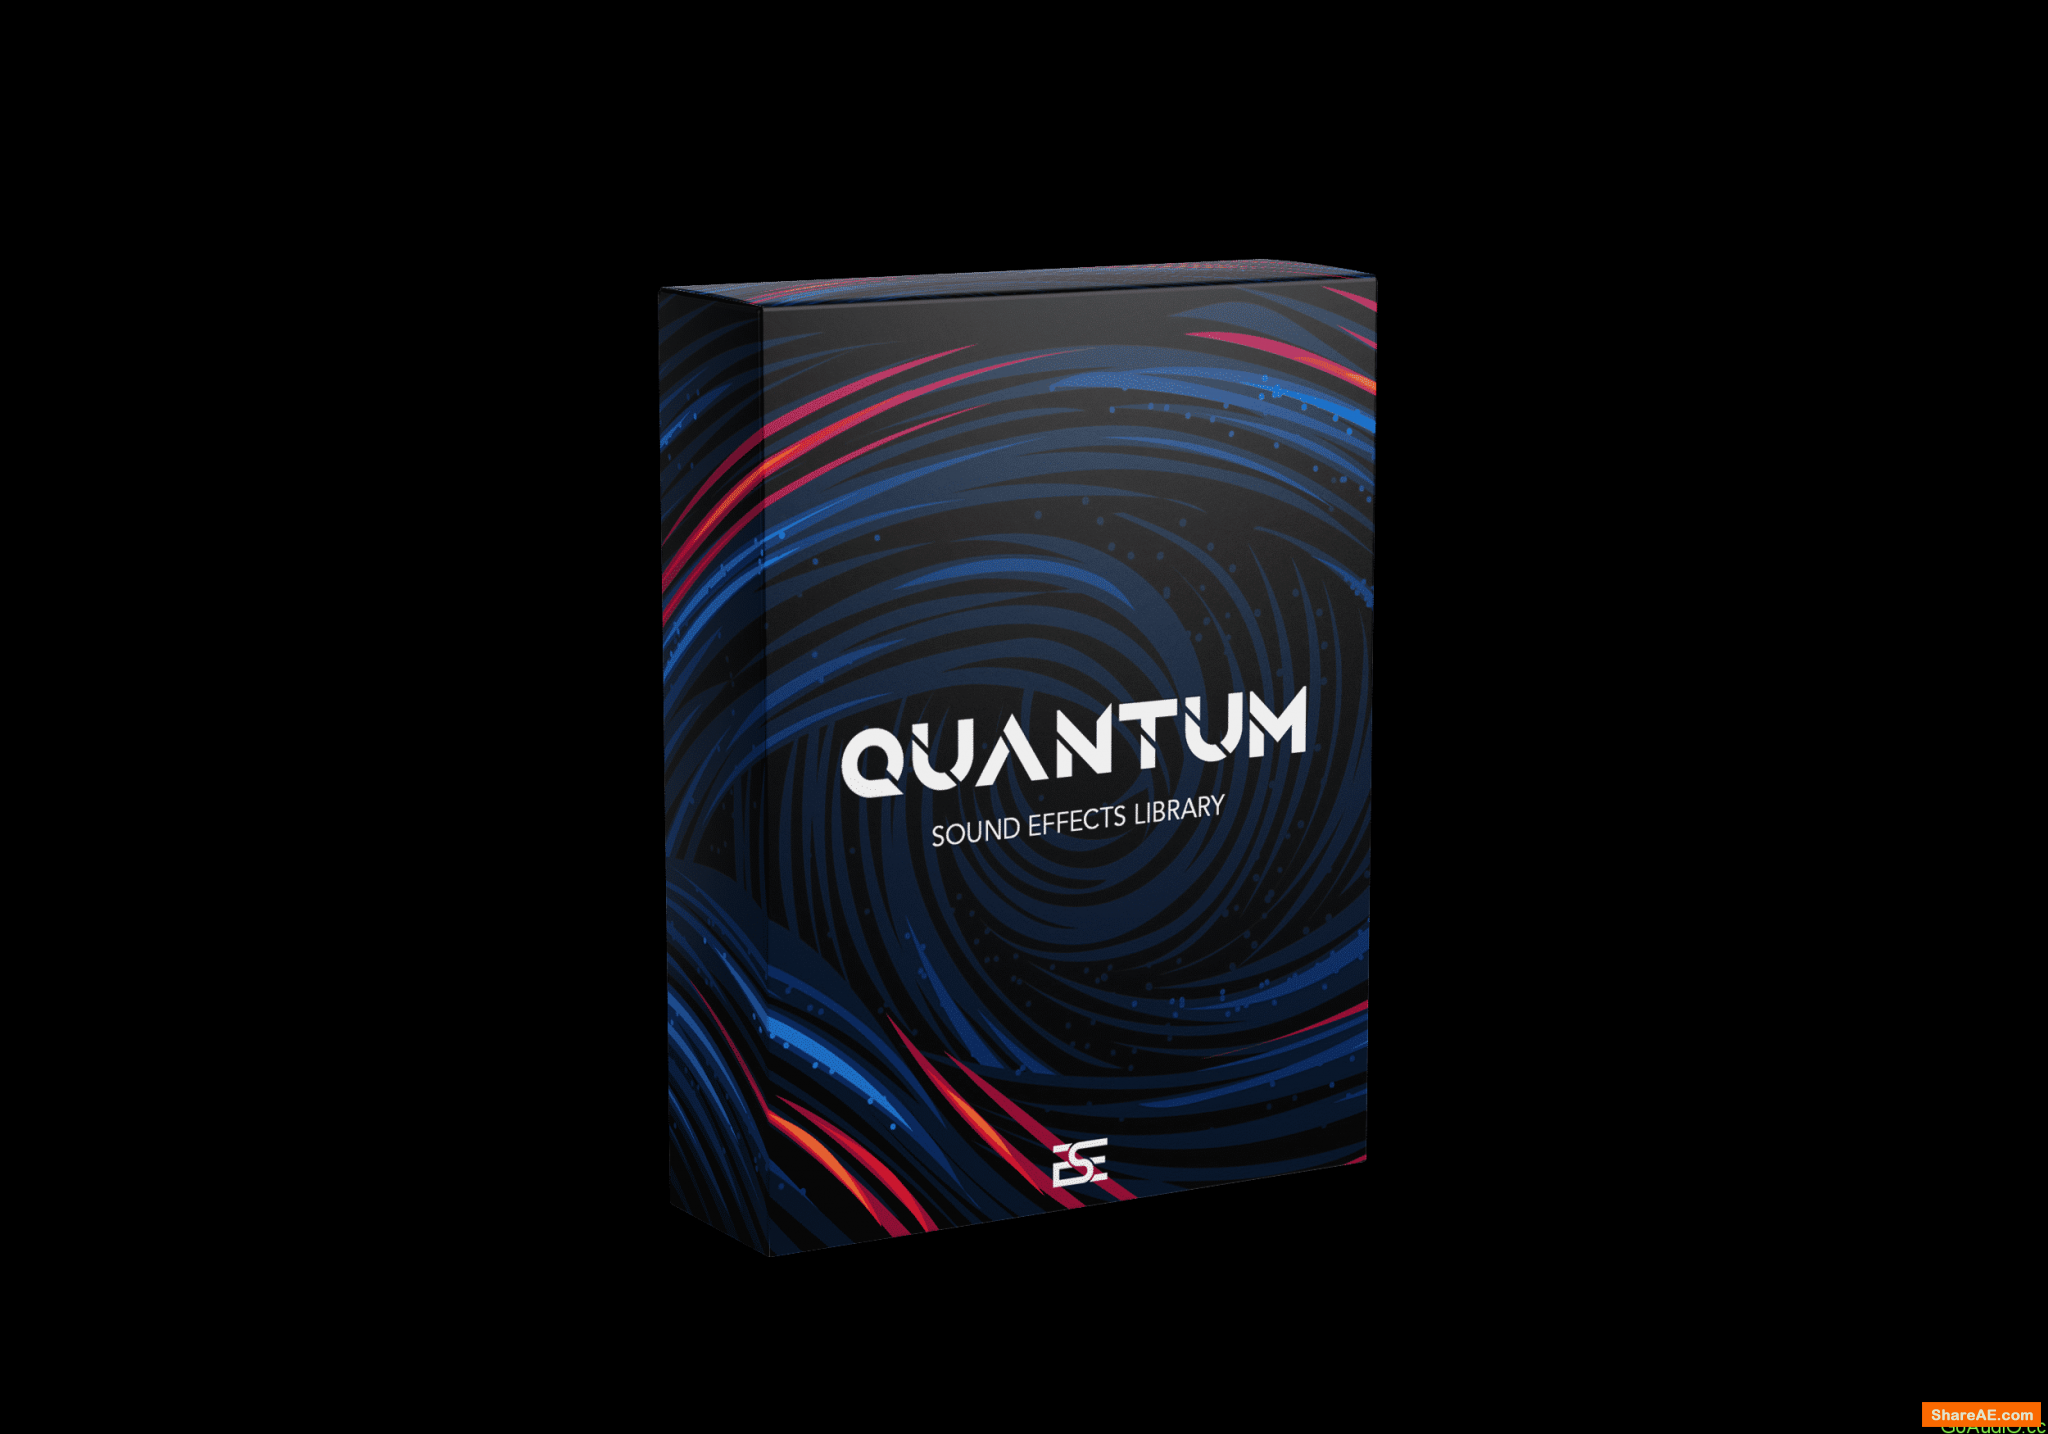 Quantum Sound Effects